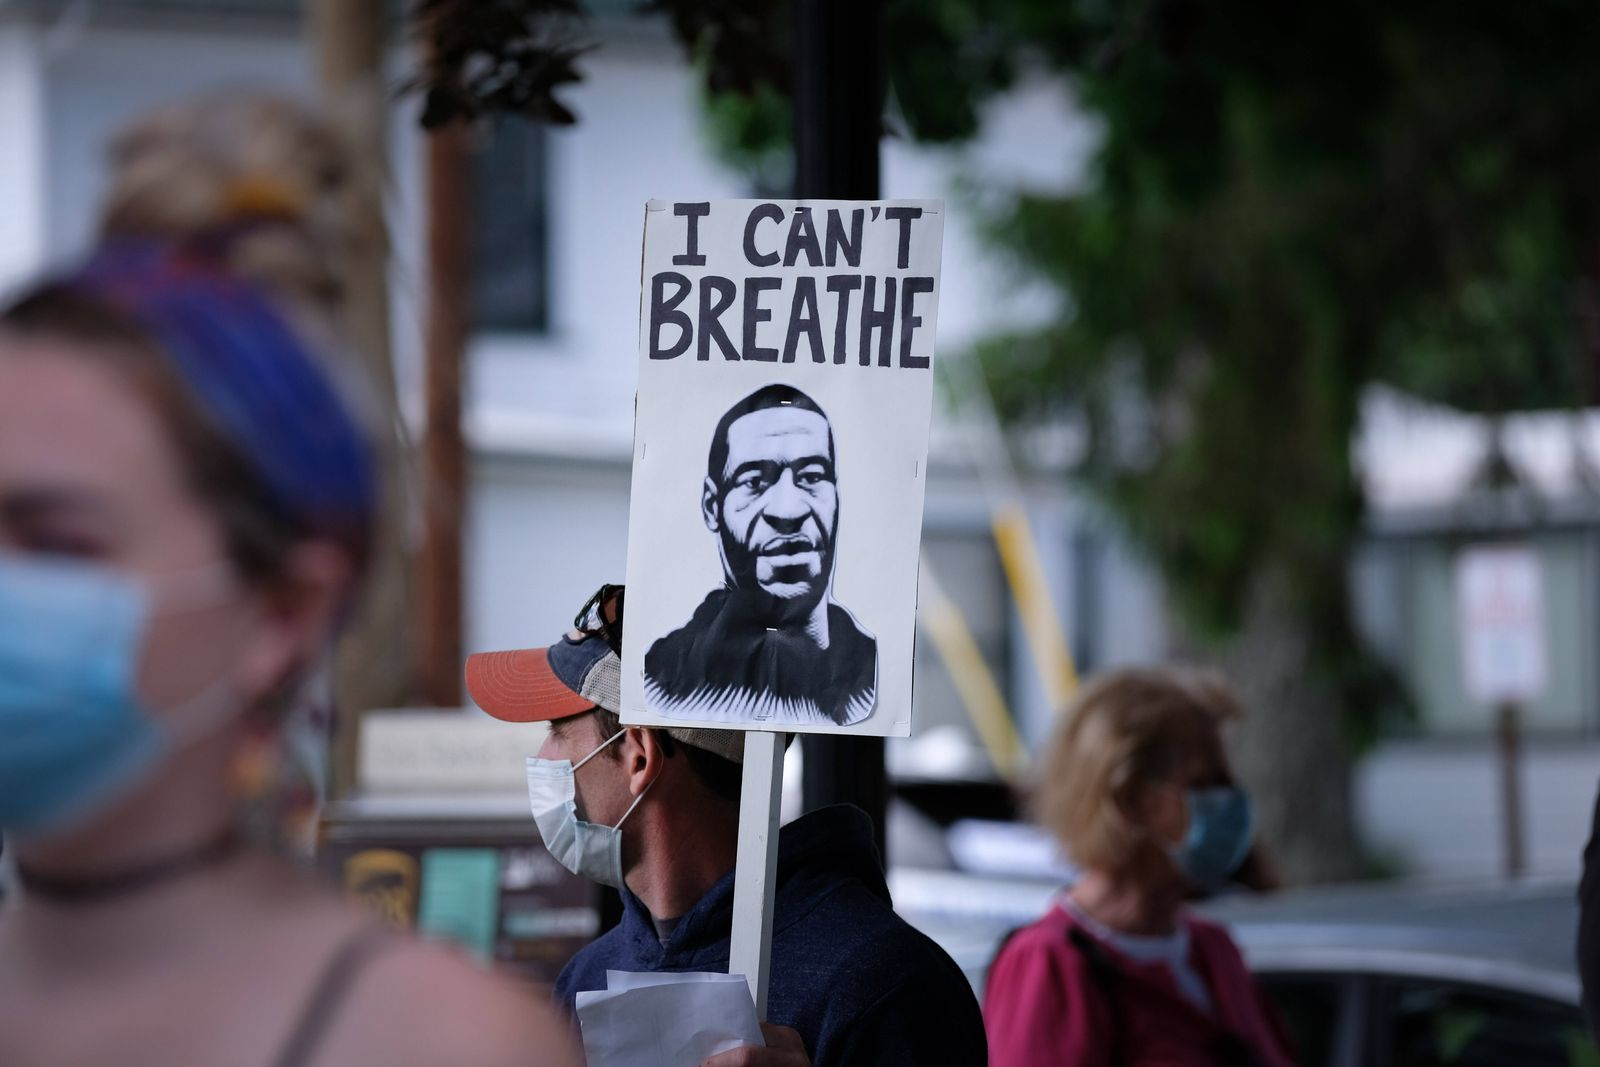 May 31, 2020, Milford, Pennsylvania, United States: George Floyd, I can t breath placard during a vigil for George Floy